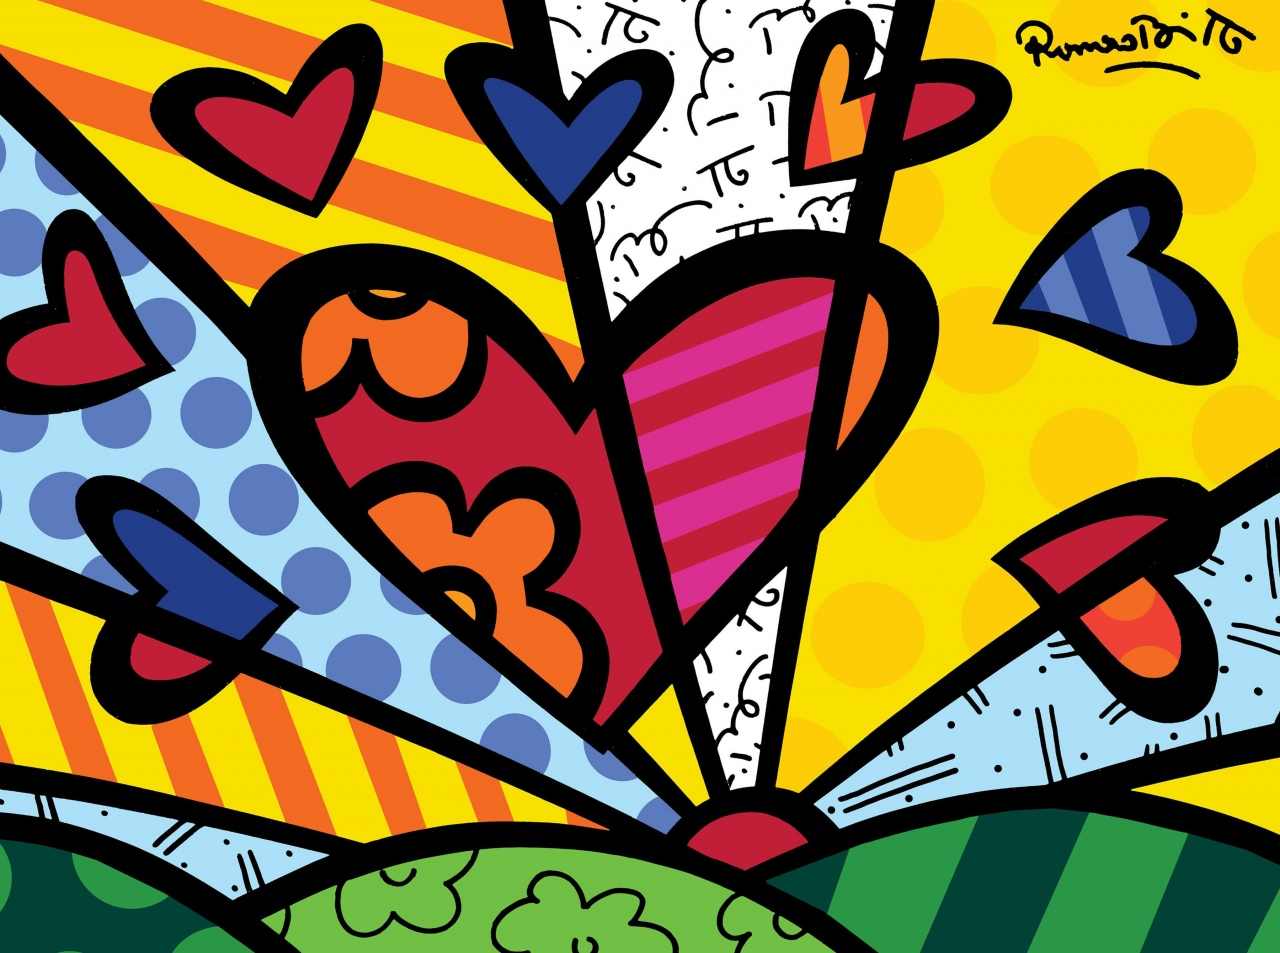 Romero Britto Fish Sculpture Image Result For Obras De Romero